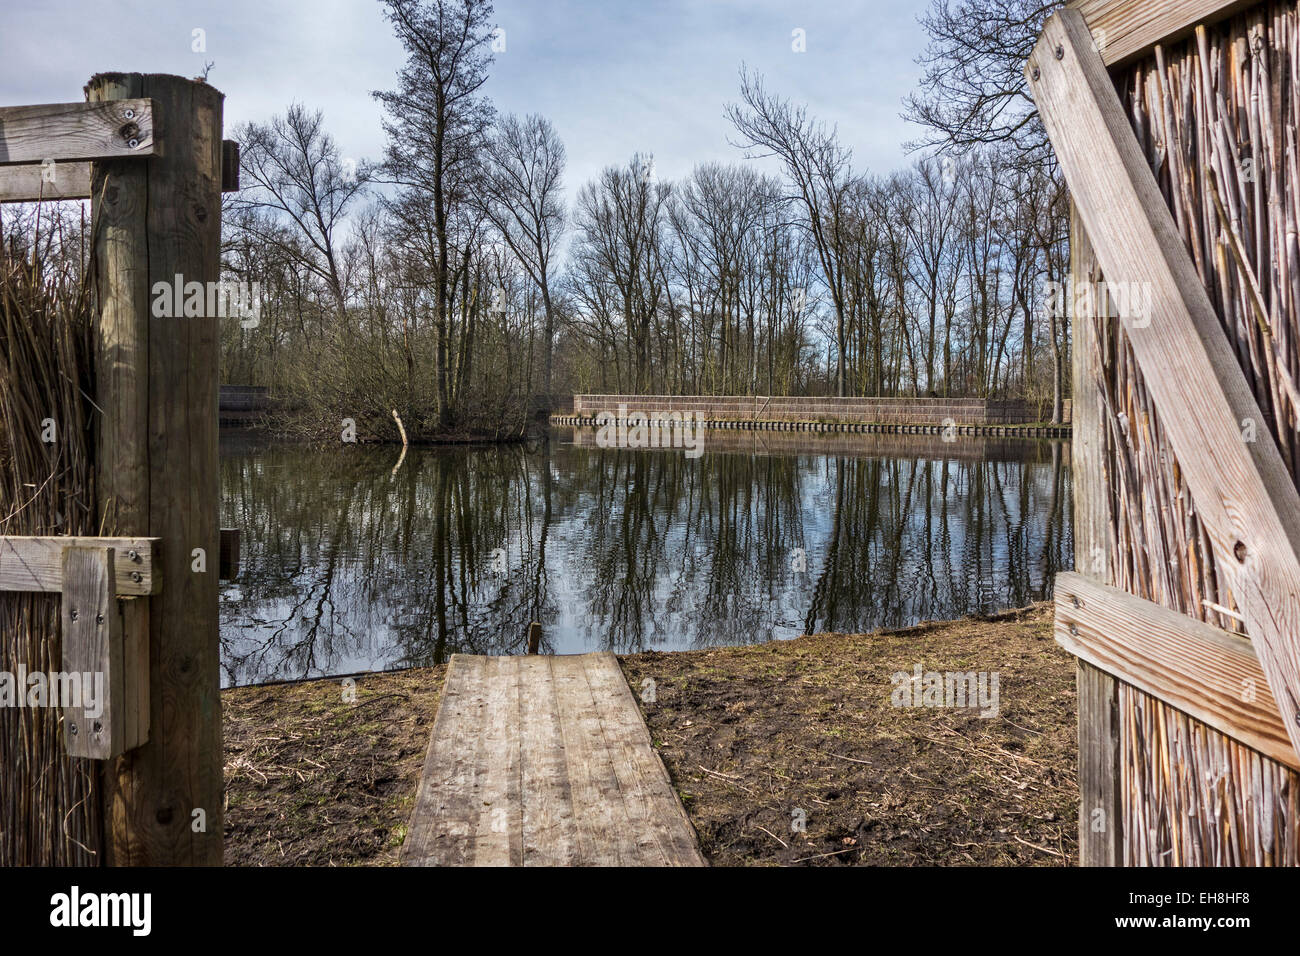 Duck decoy structure used for catching wild ducks showing pond and reed screens - Stock Image